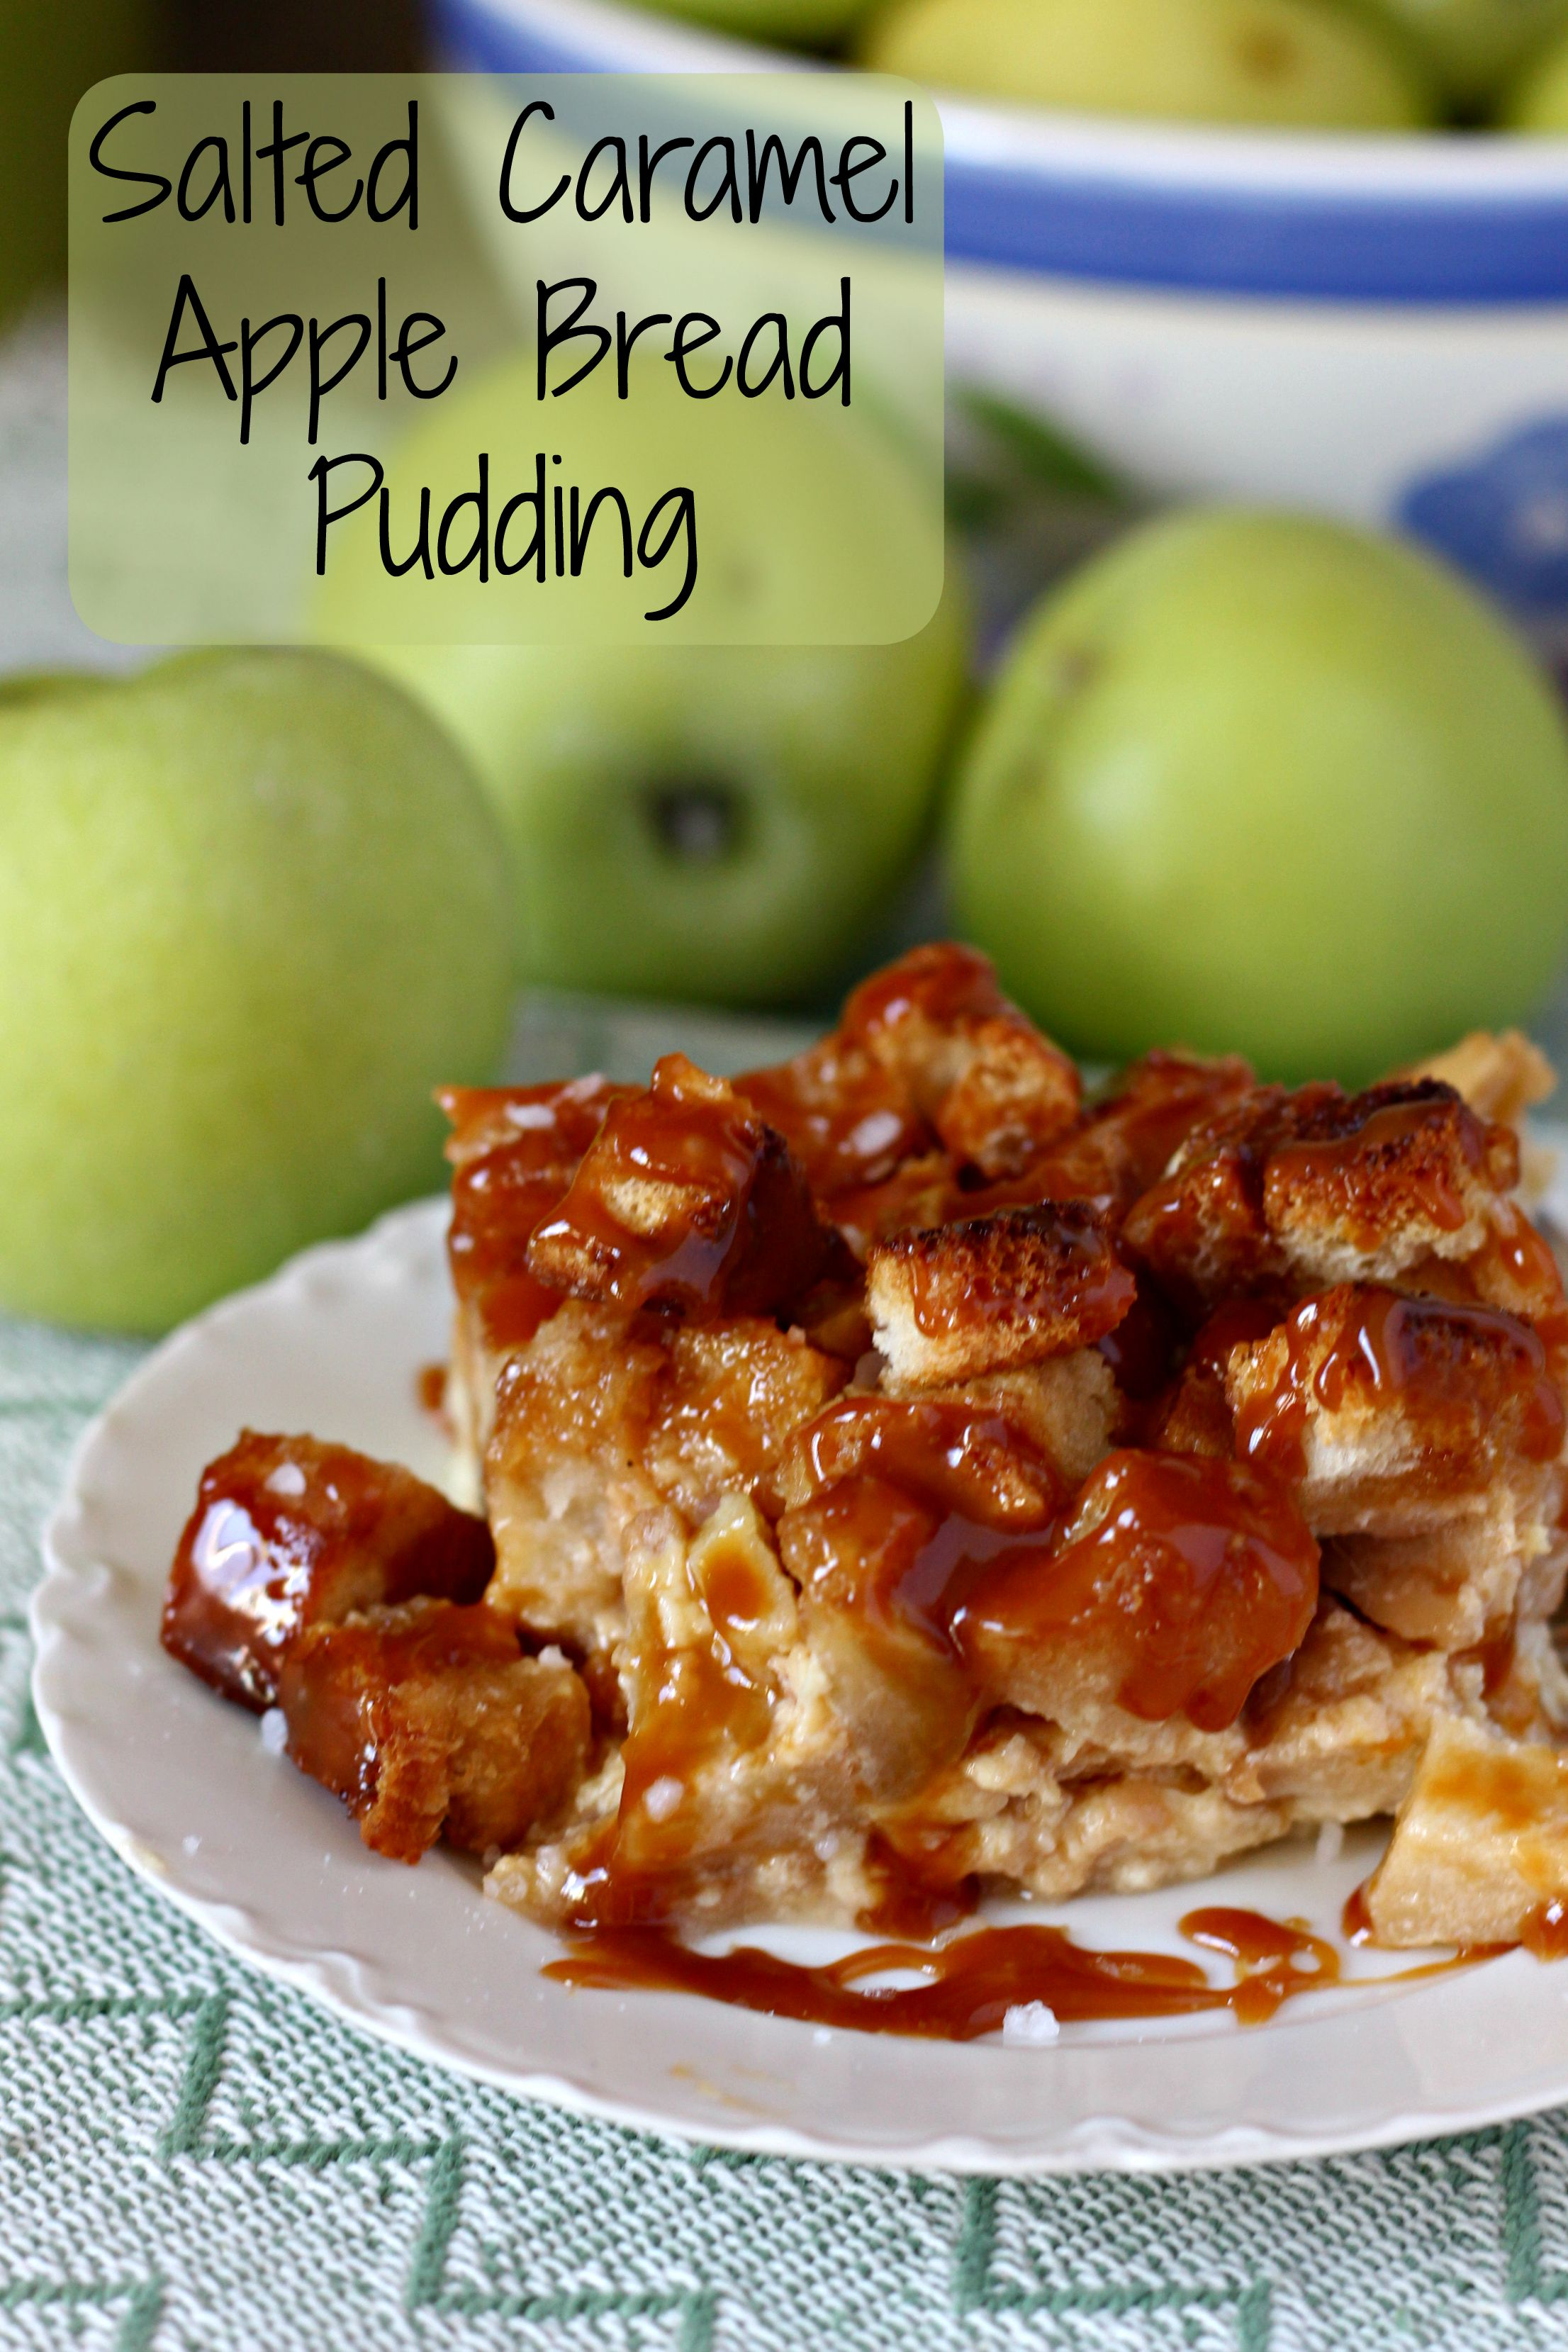 ... Caramel Apple Bread Pudding recipe. A little bit of Fall inspiration